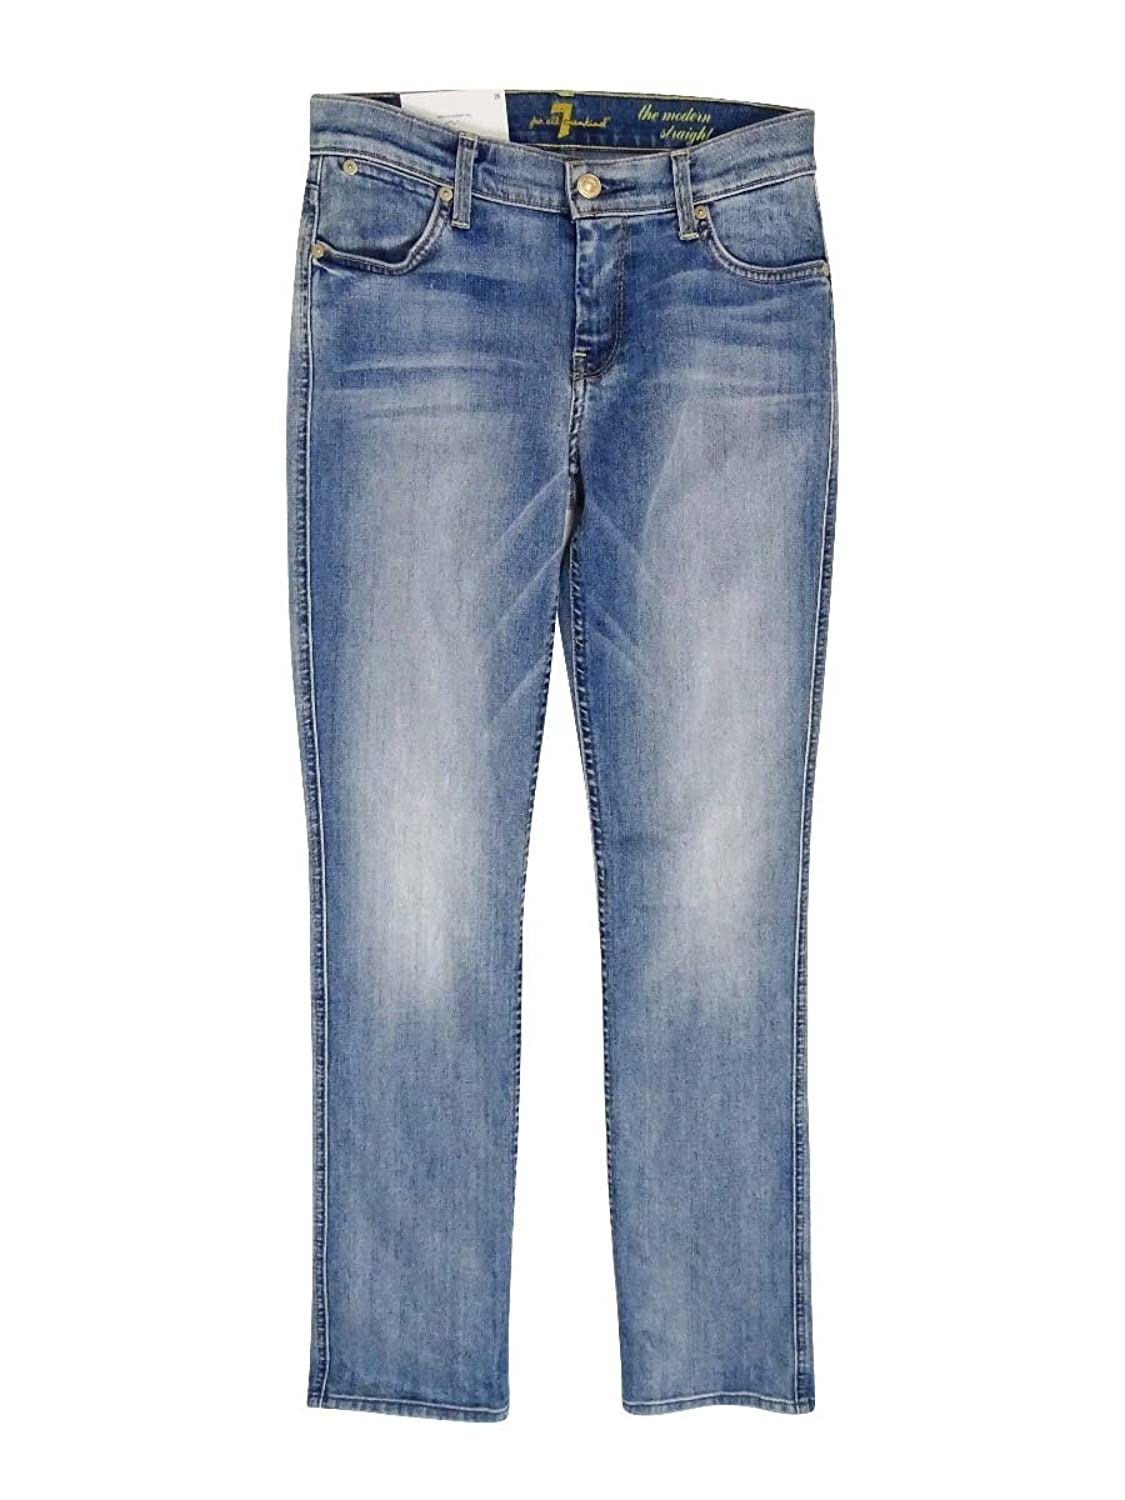 7 For All Mankind Womens Distressed Mid-Rise Skinny Jeans